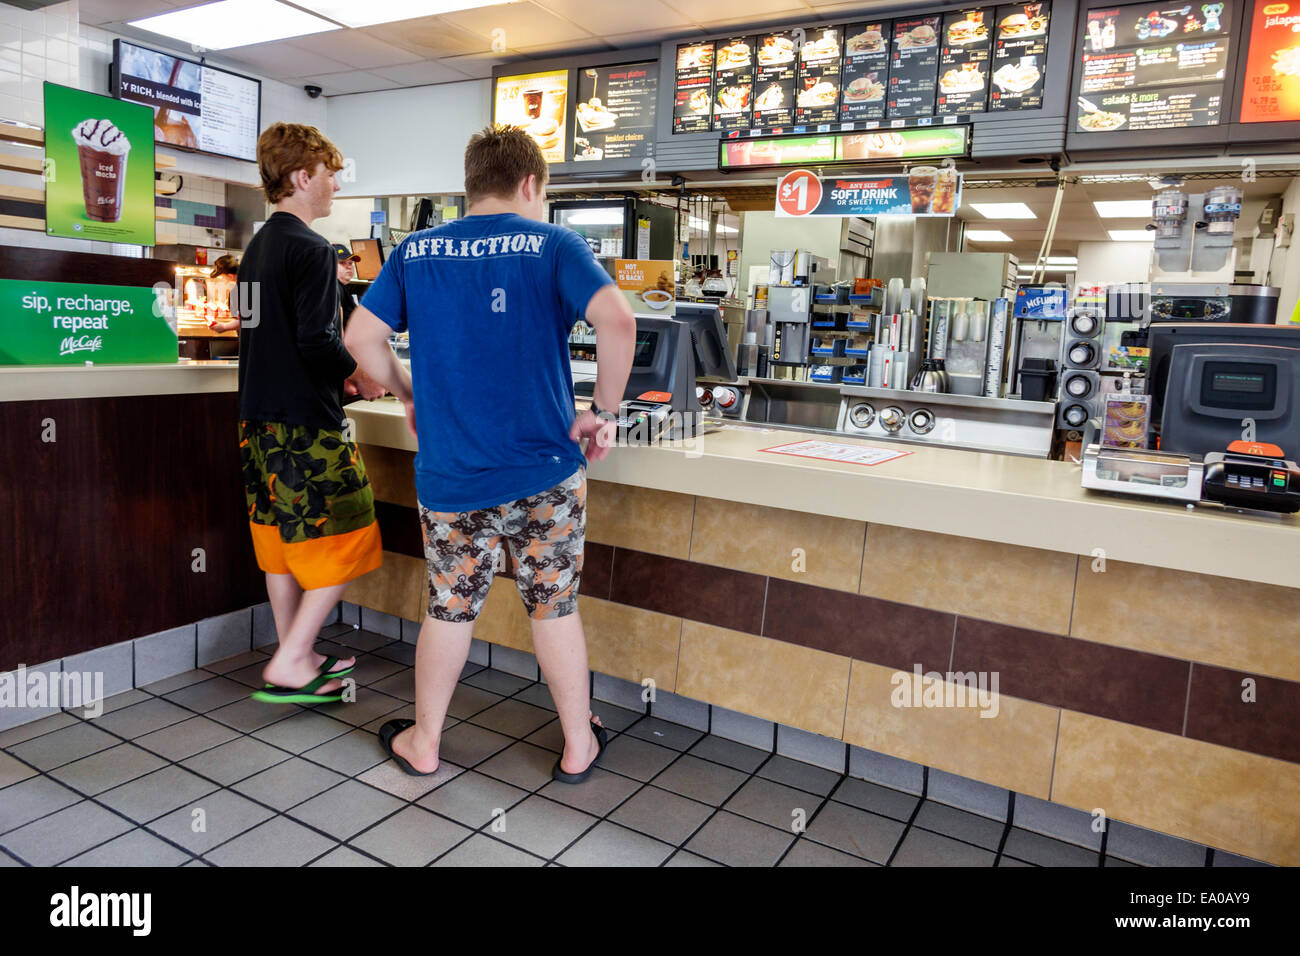 Florida Okeechobee McDonald's restaurant fast food inside counter teen boy friends customers - Stock Image